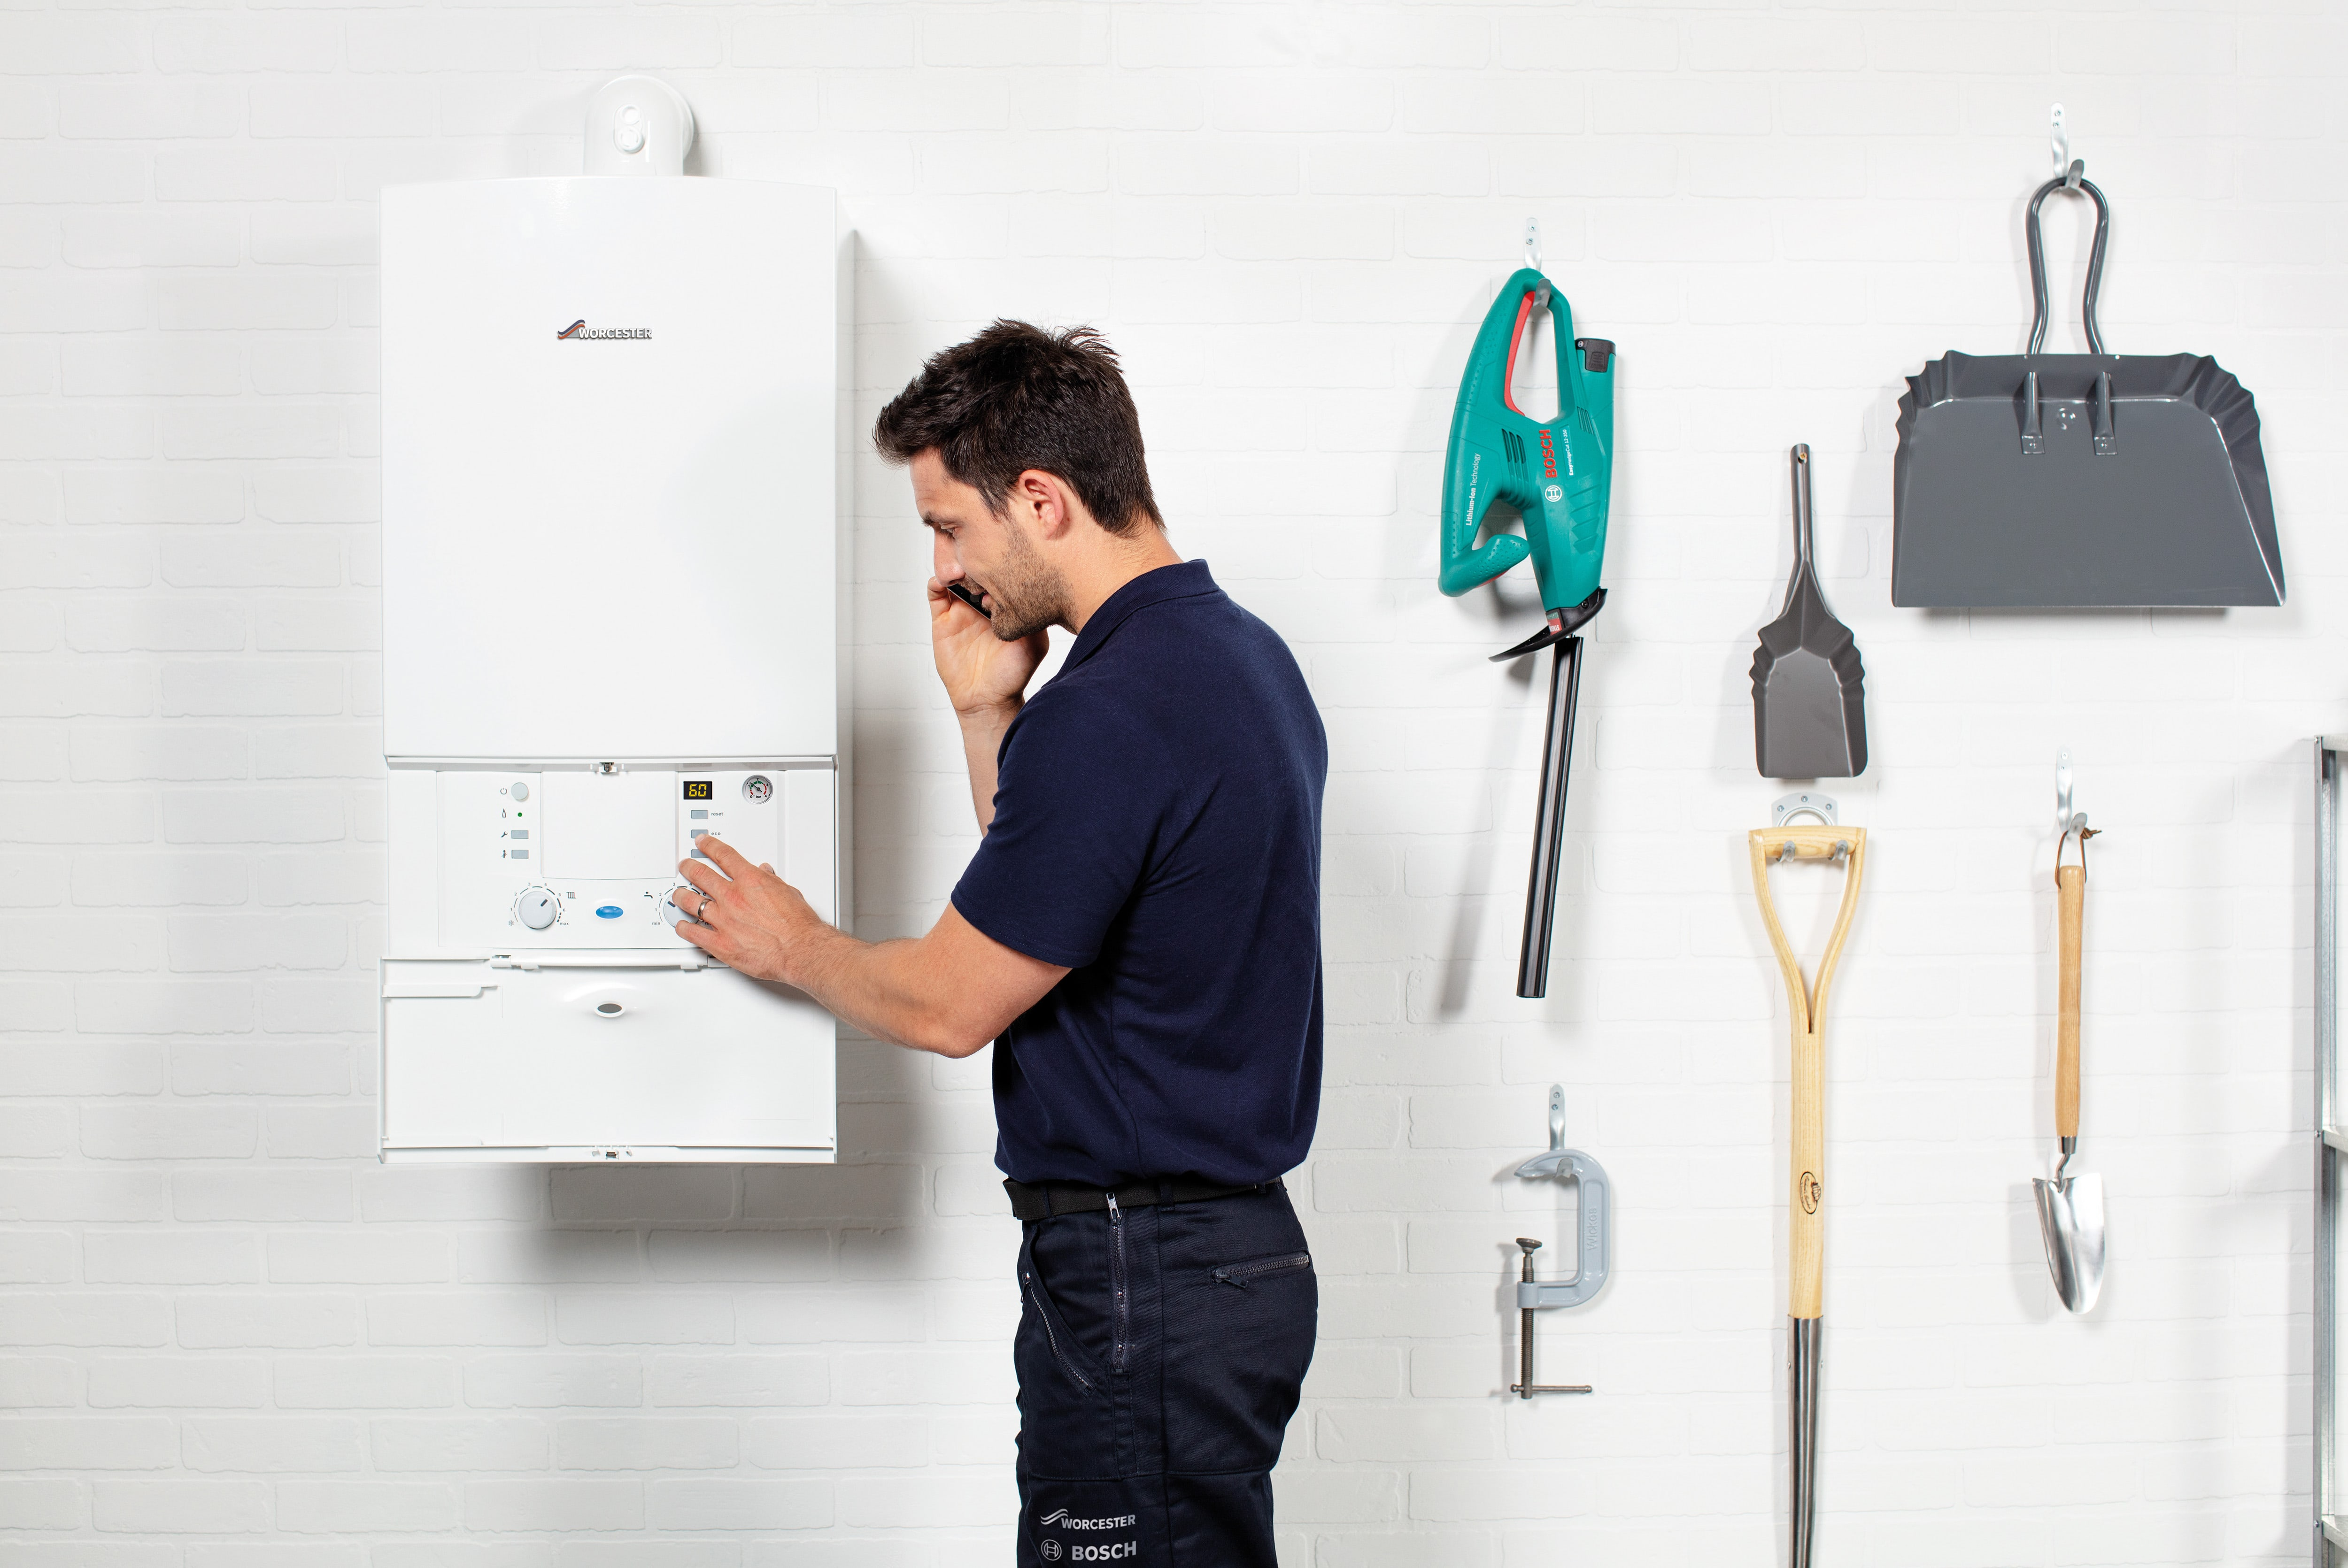 Engineer fixing a broken boiler